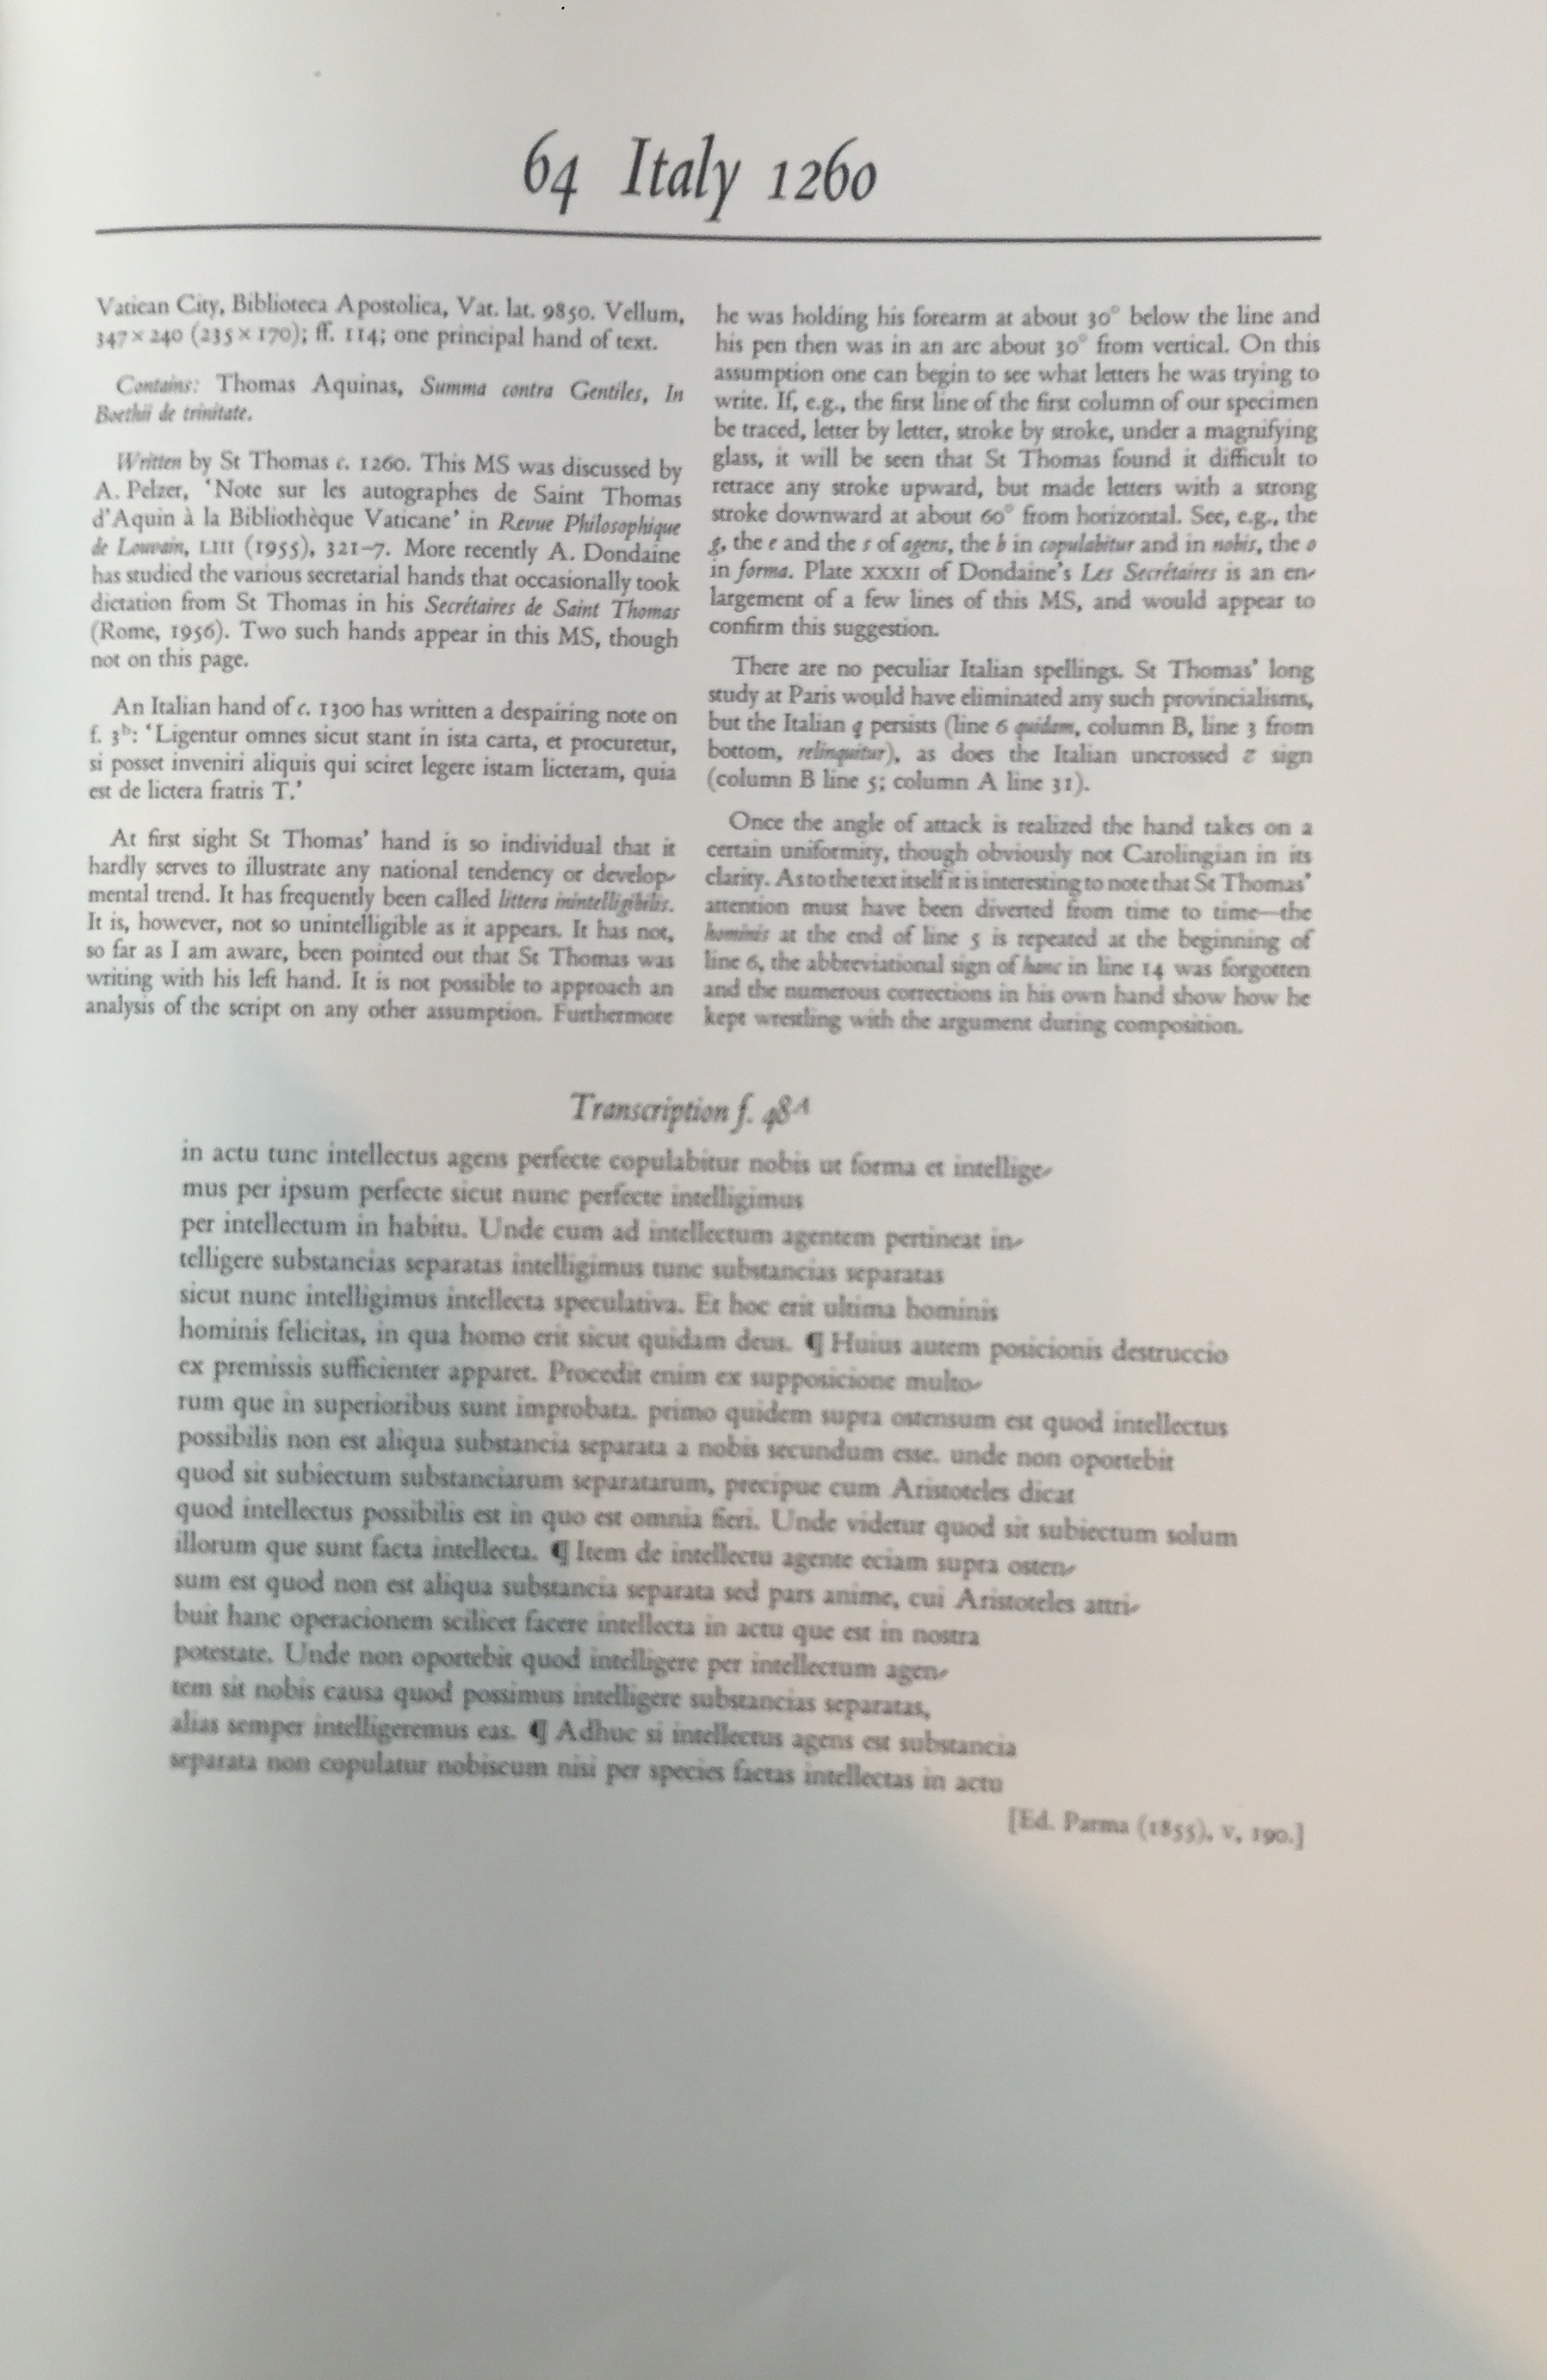 Harrison's commentary. Check out column 1, towards the bottom.